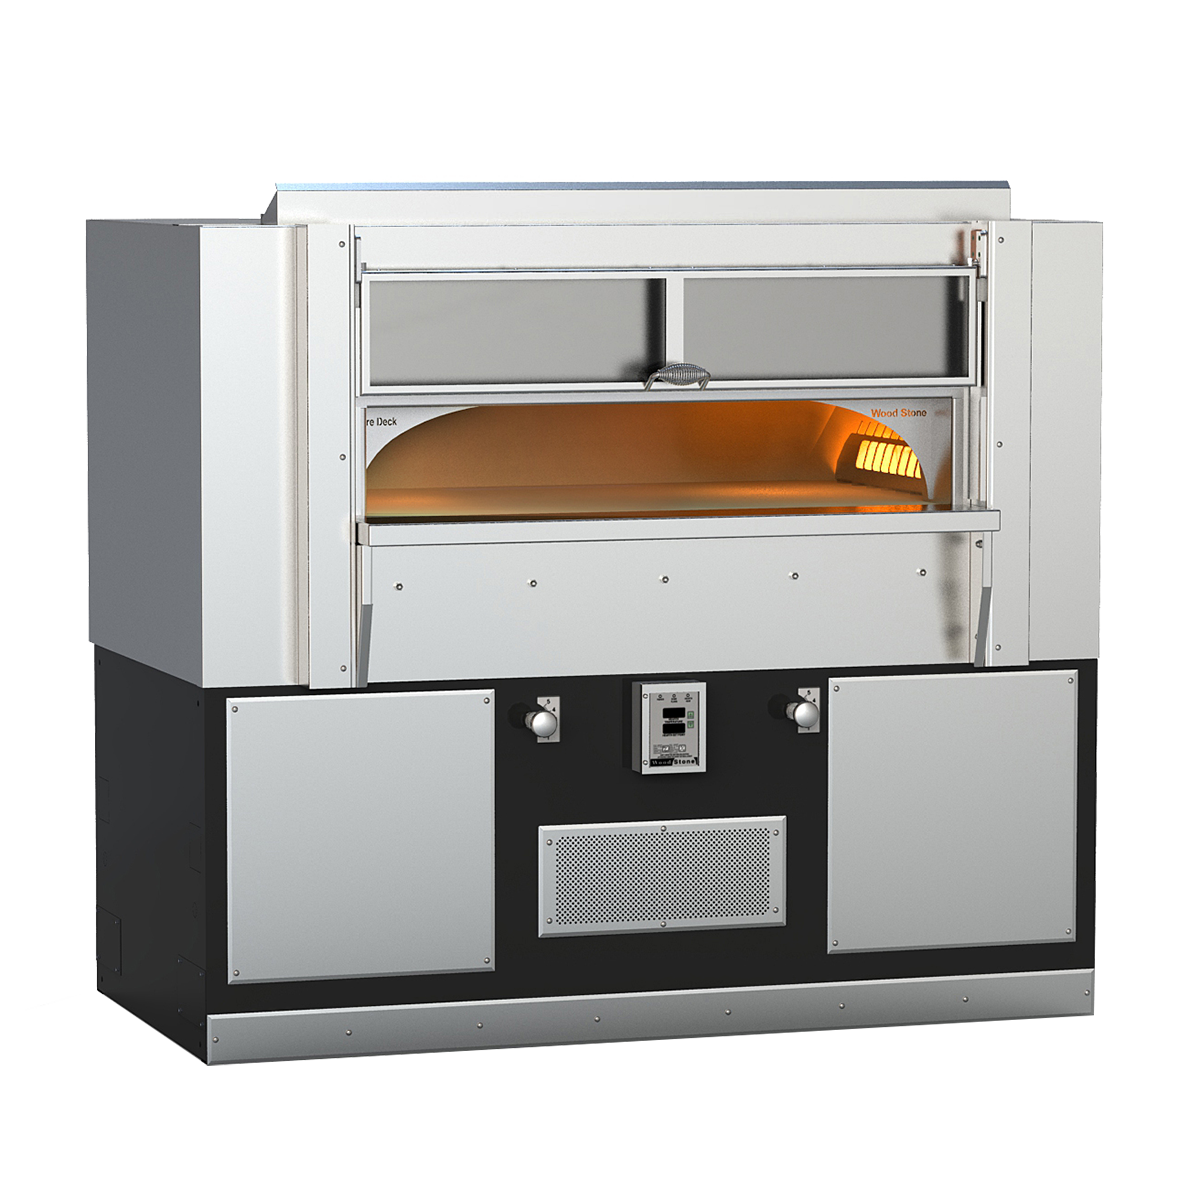 Fire Deck 8645 oven rendering